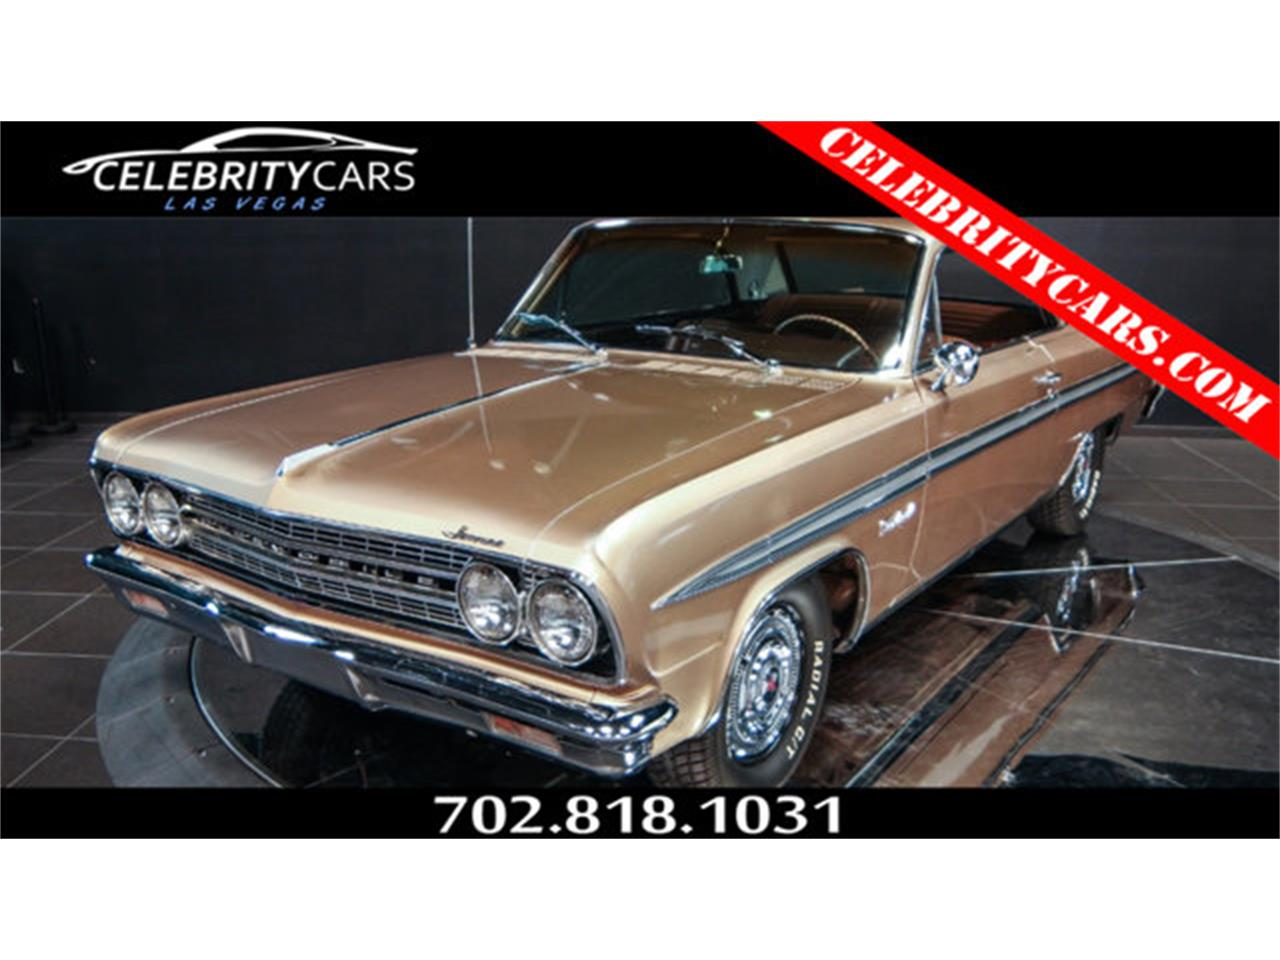 Large Picture of Classic 1963 Oldsmobile Jet fire Turbocharged located in Las Vegas Nevada - J98V